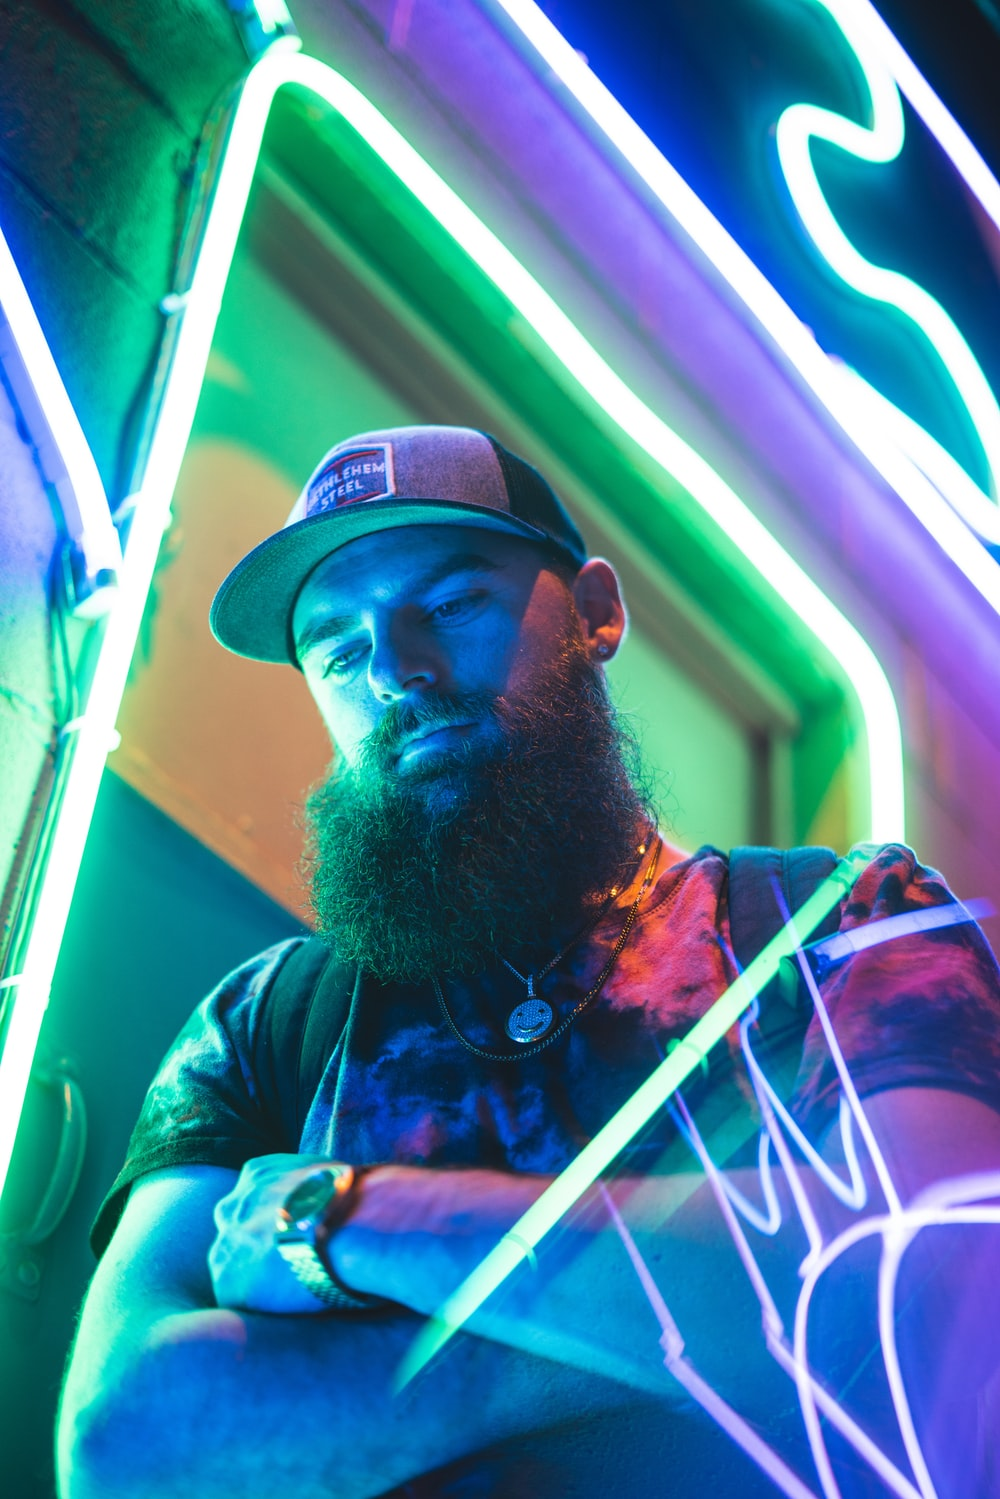 low-angle photography of a bearded man beside a green neon light signage